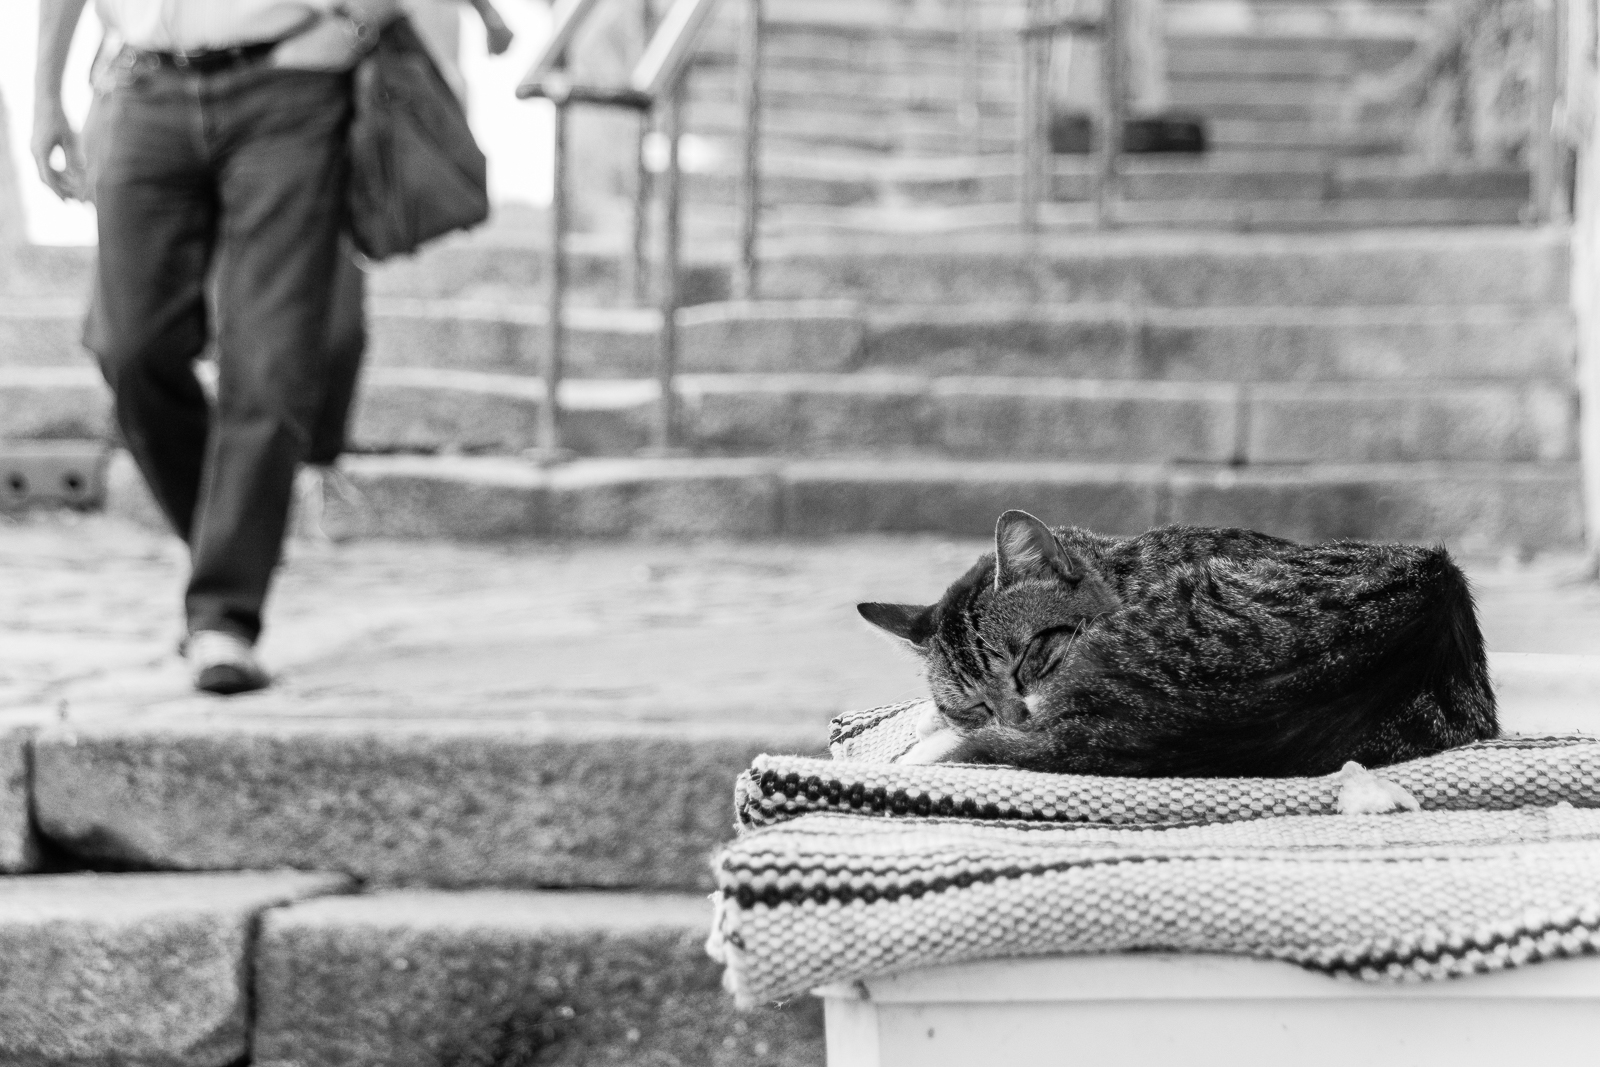 <h5>Let sleeping cats lie</h5><p>By Andrea Edwards</p>